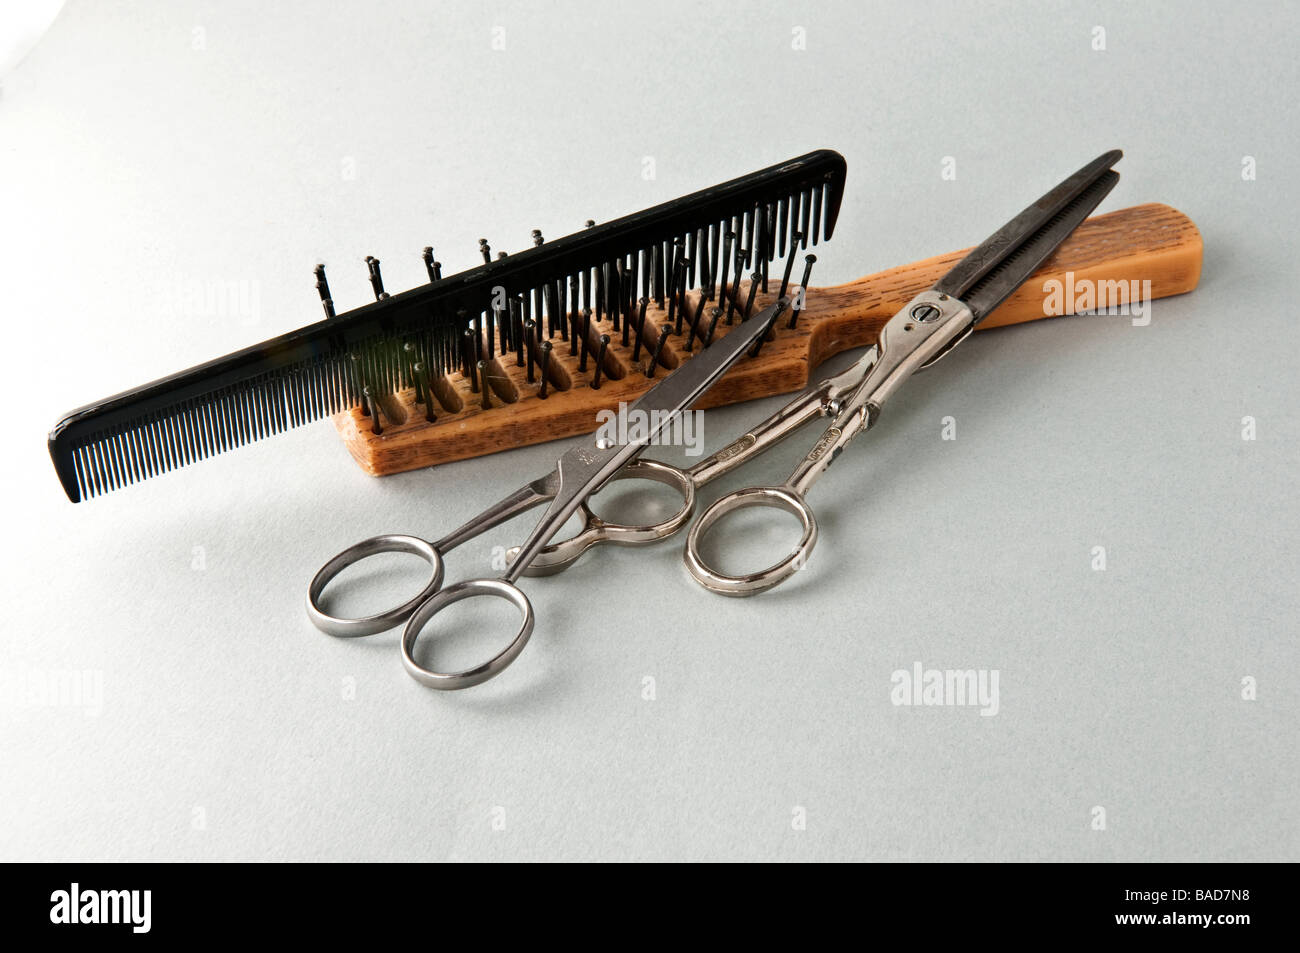 black comb brush and barber shears - Stock Image